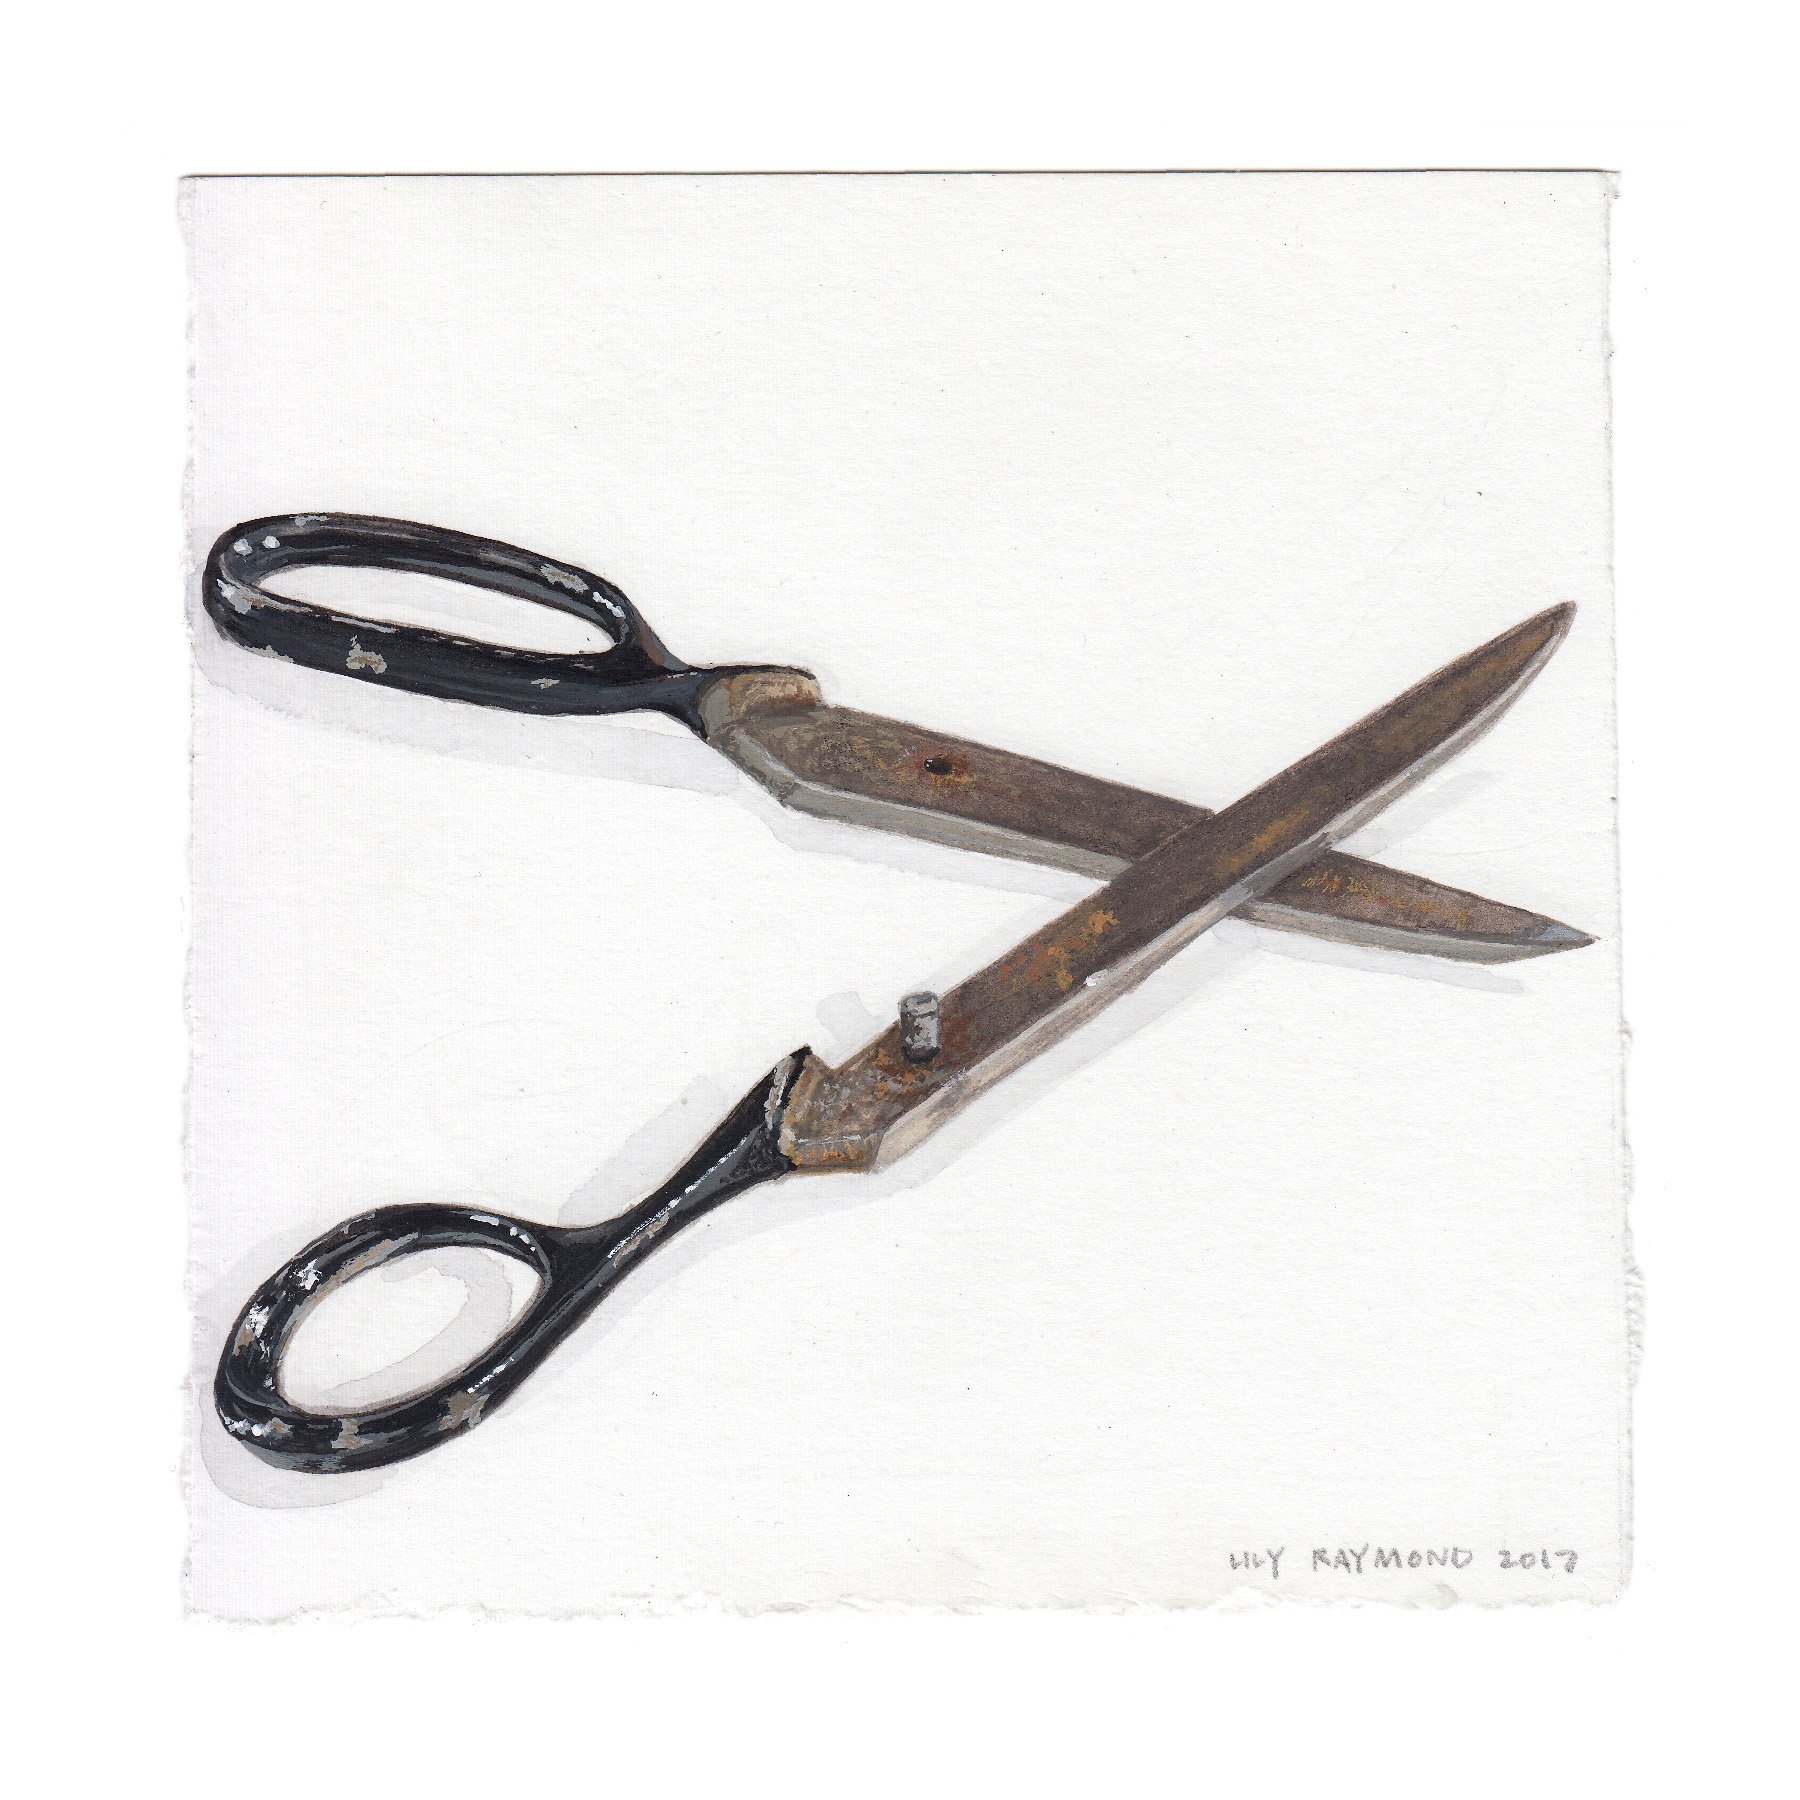 100 Days: Broken Scissors